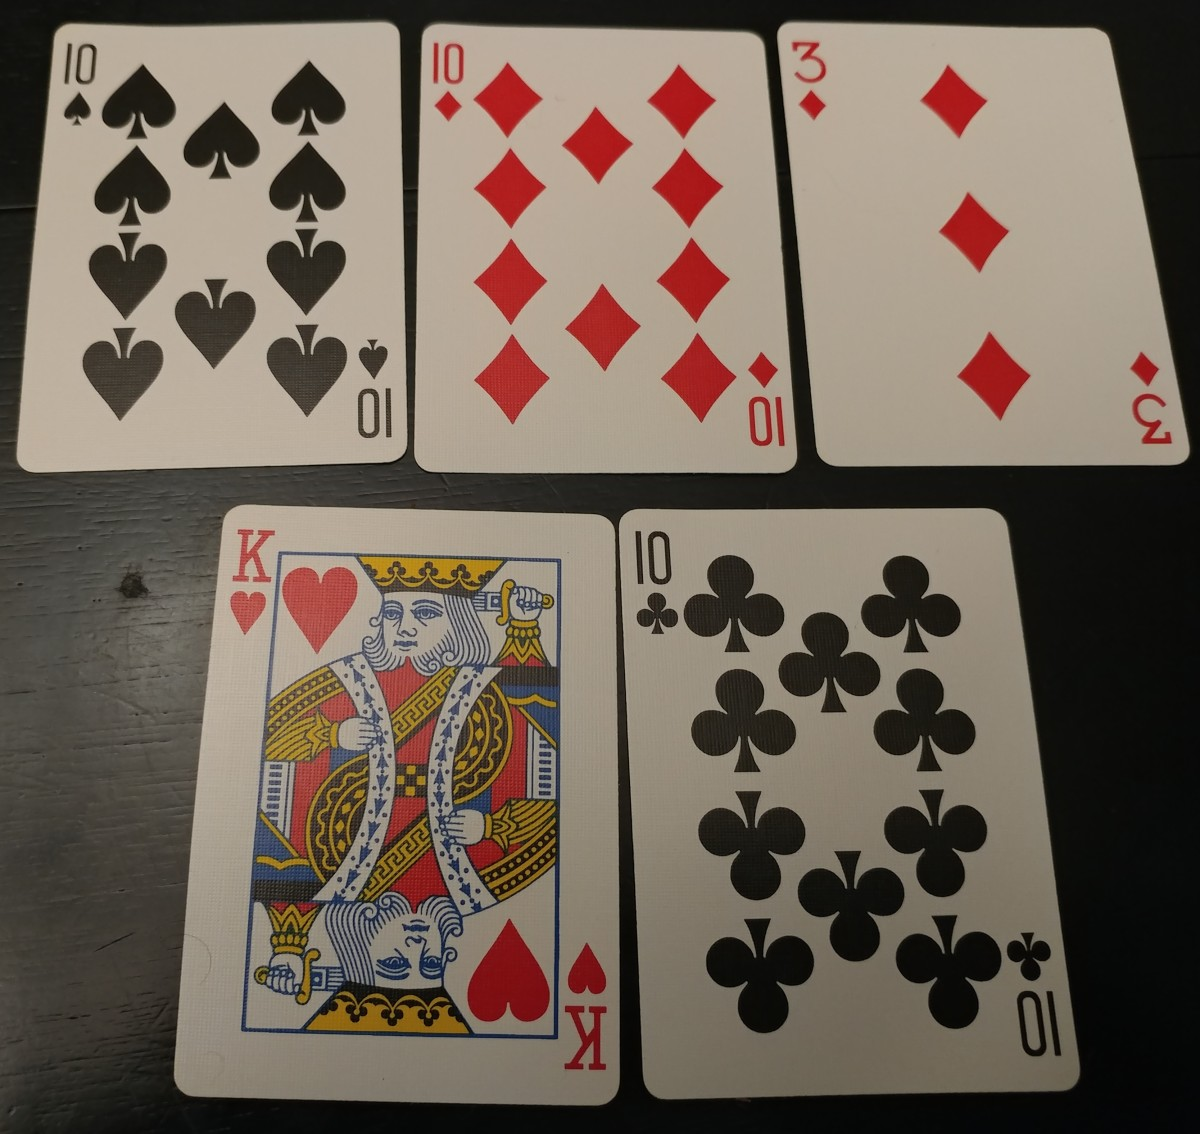 This is a trips hand. I will go all with all trips hands most of the time. I will avoid weaker trips hands, though.